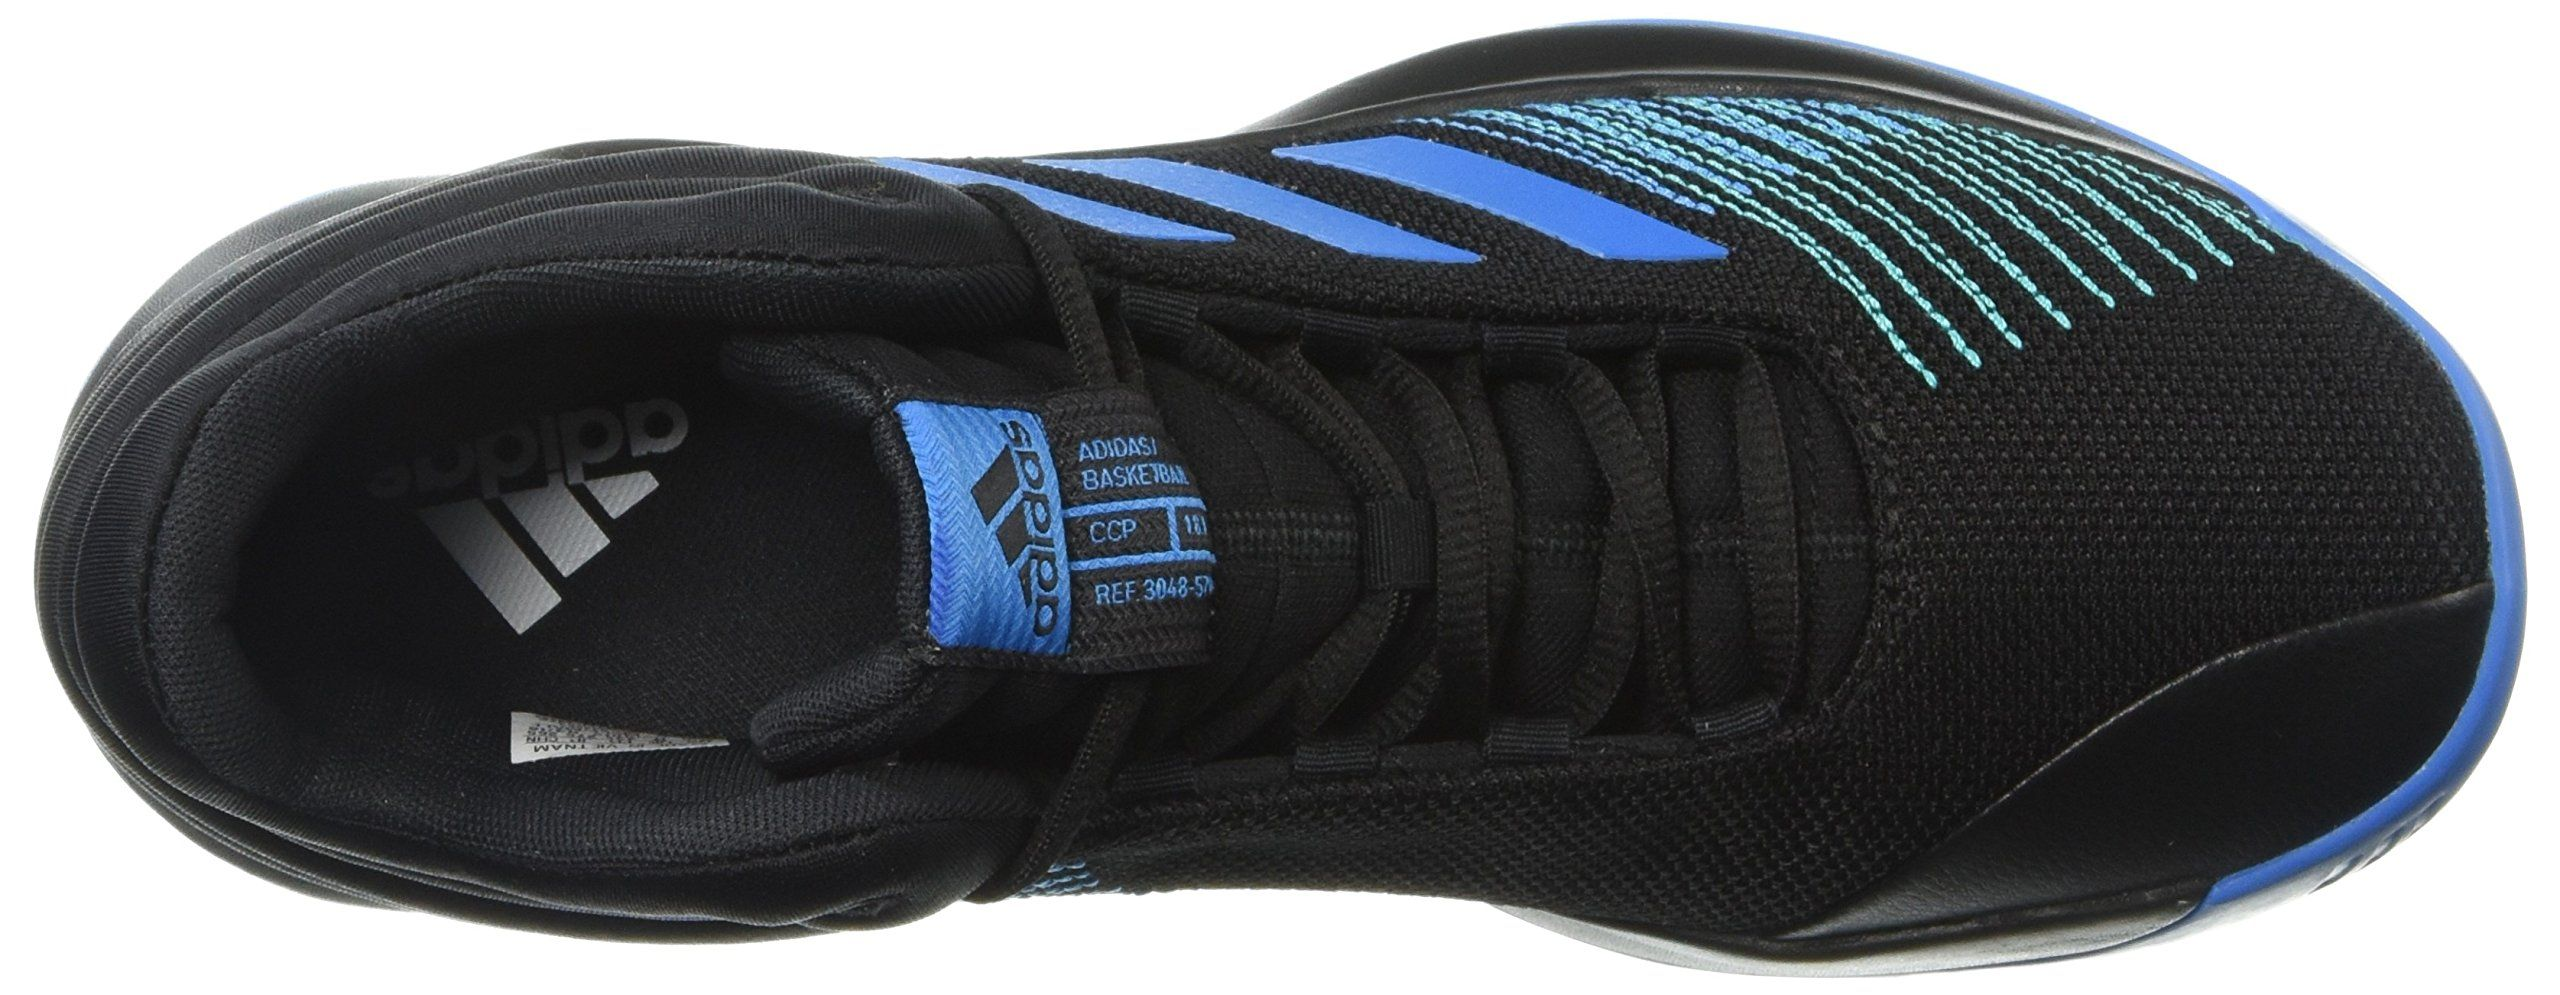 adidas Mens Pro Spark 2018 Basketball Shoe Bright Blue Black 10 M US      See this great product. (This is an affiliate link) de2b354e18b